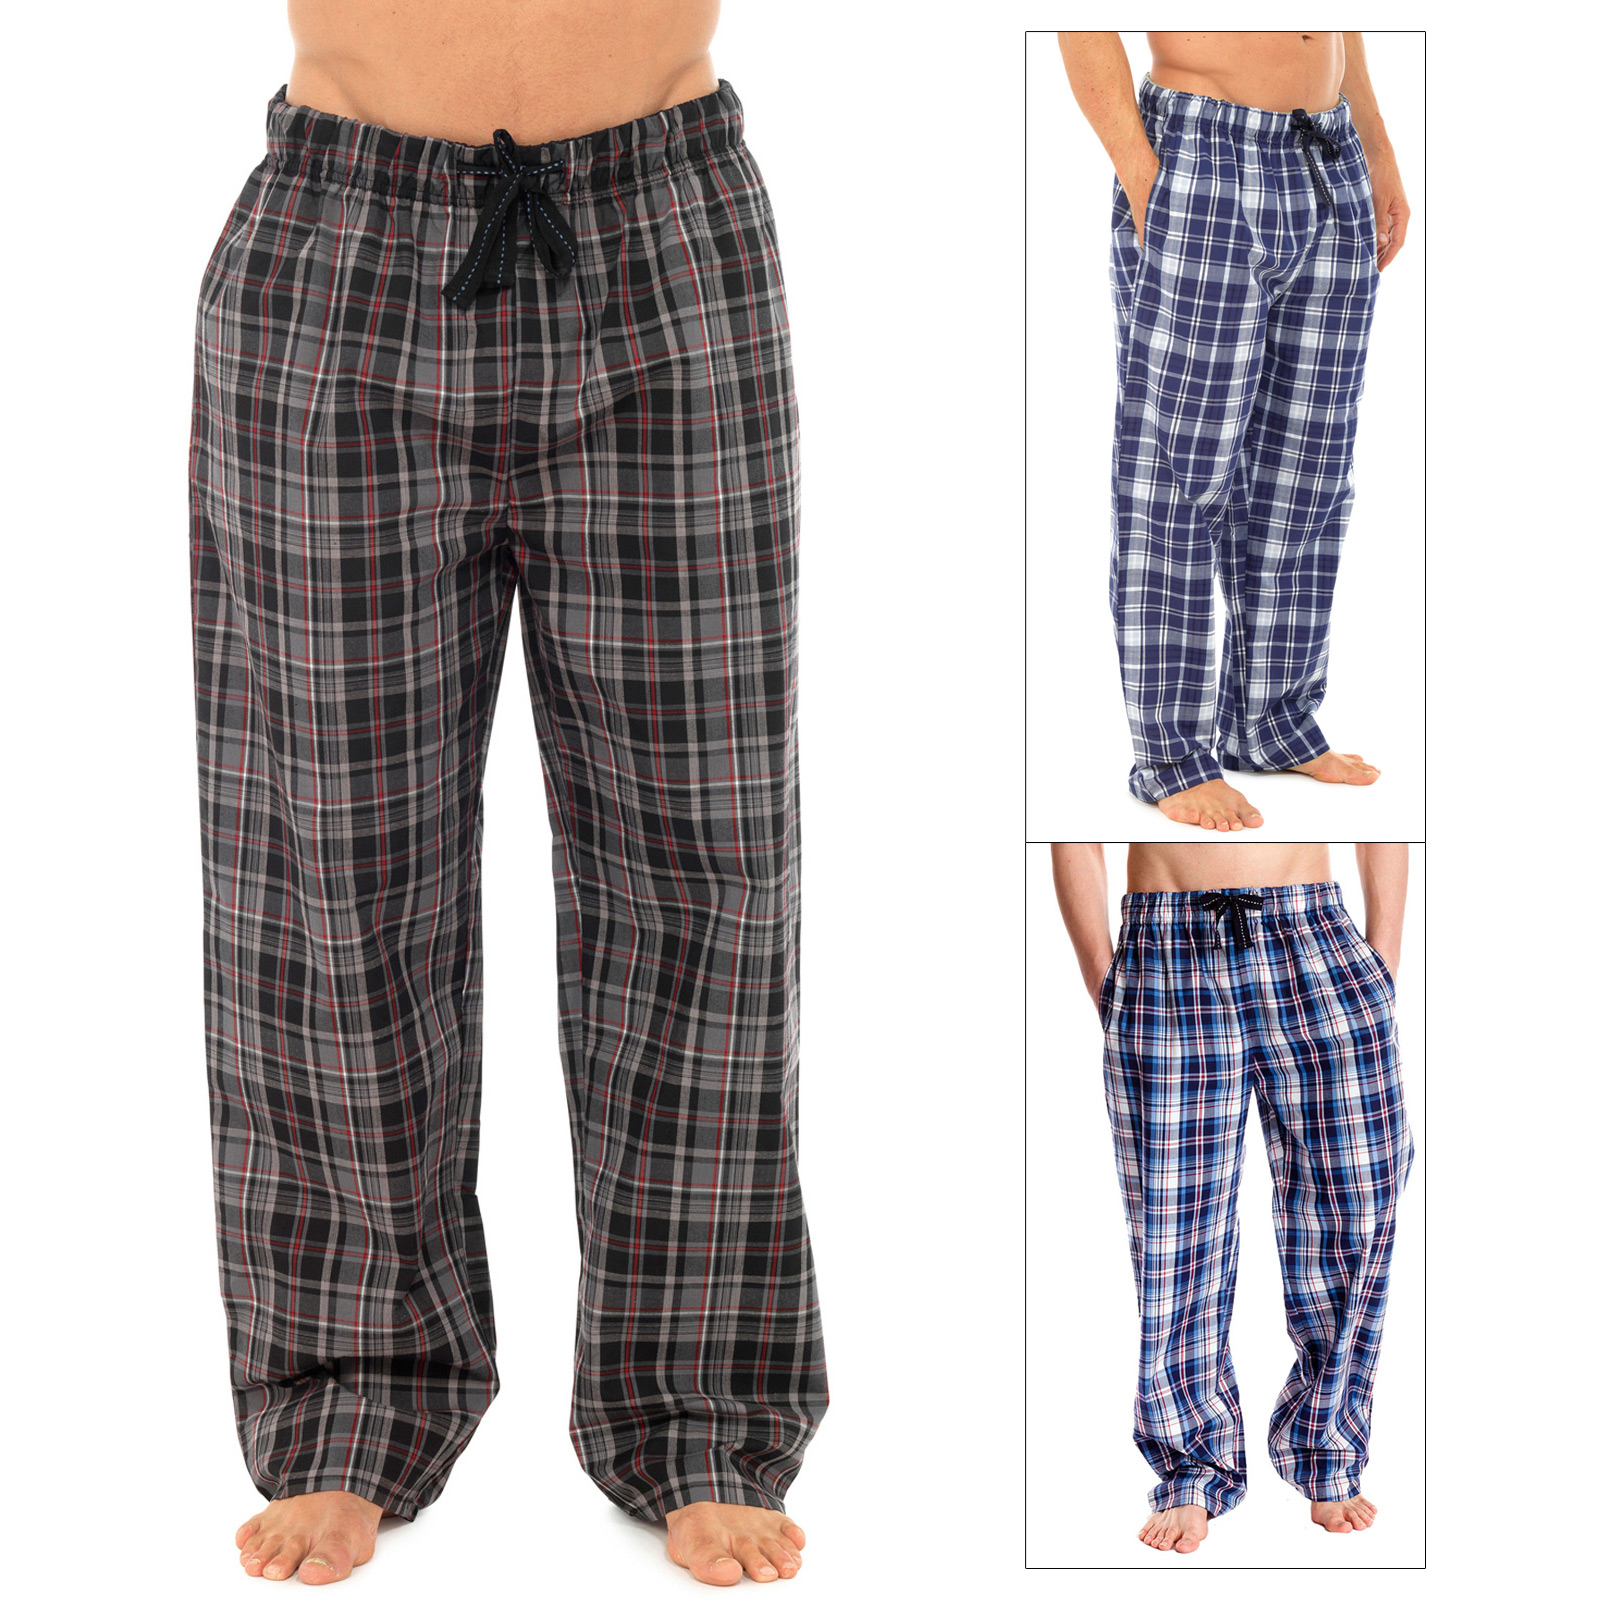 Shop for mens lounge pants at dvlnpxiuf.ga Free Shipping. Free Returns. All the time.